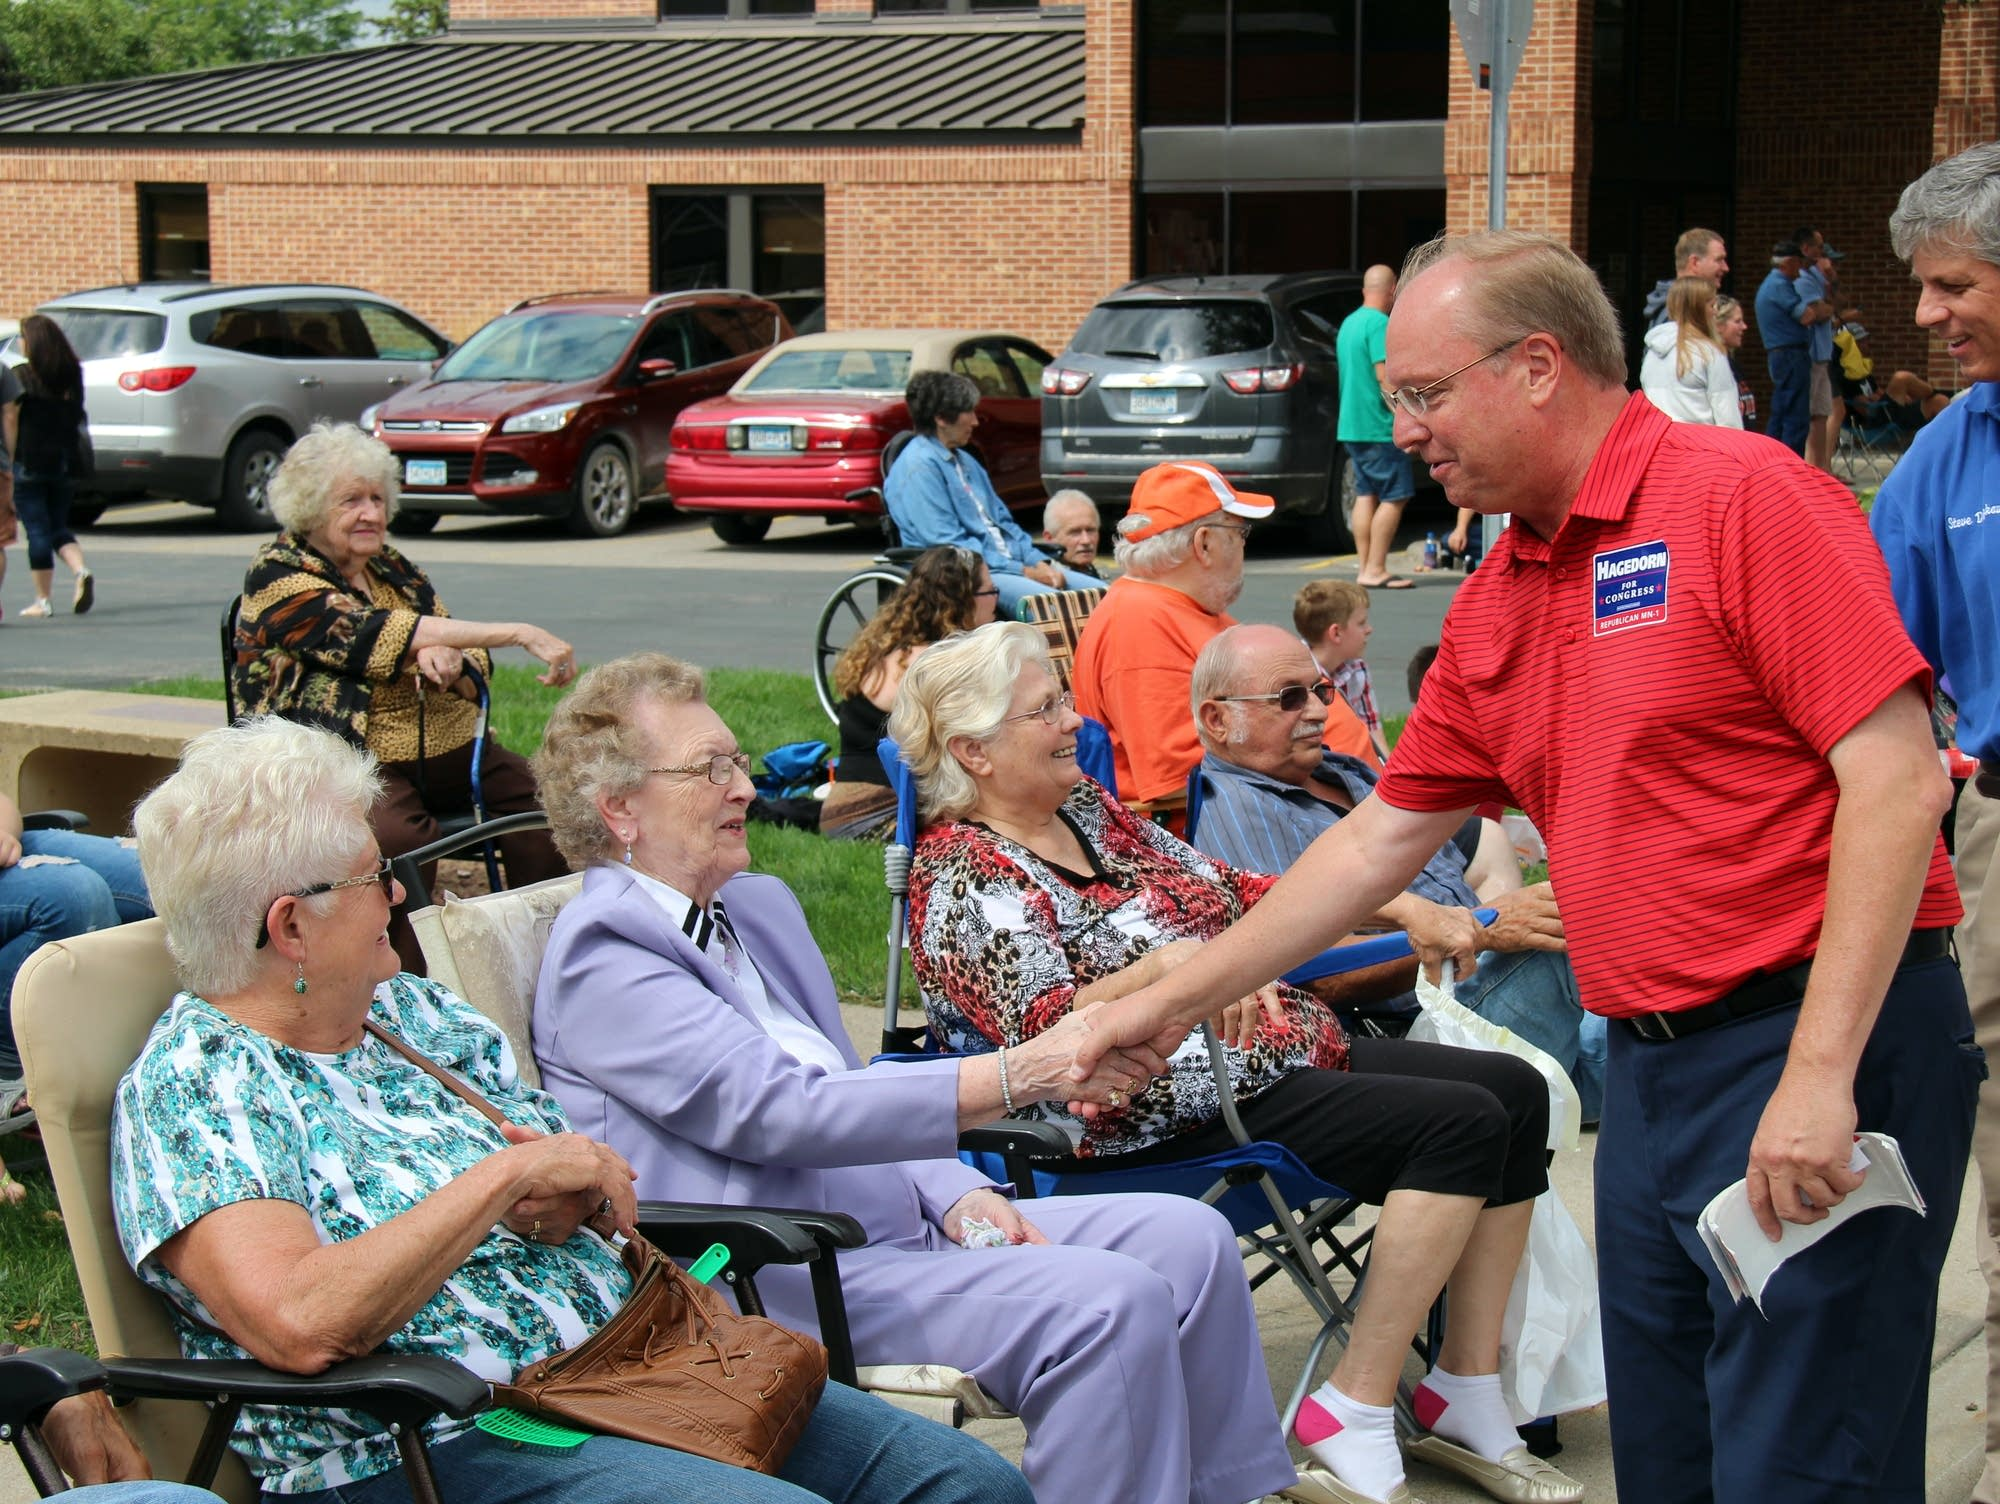 Republican Jim Hagedorn campaigns in St. Charles, Minn.